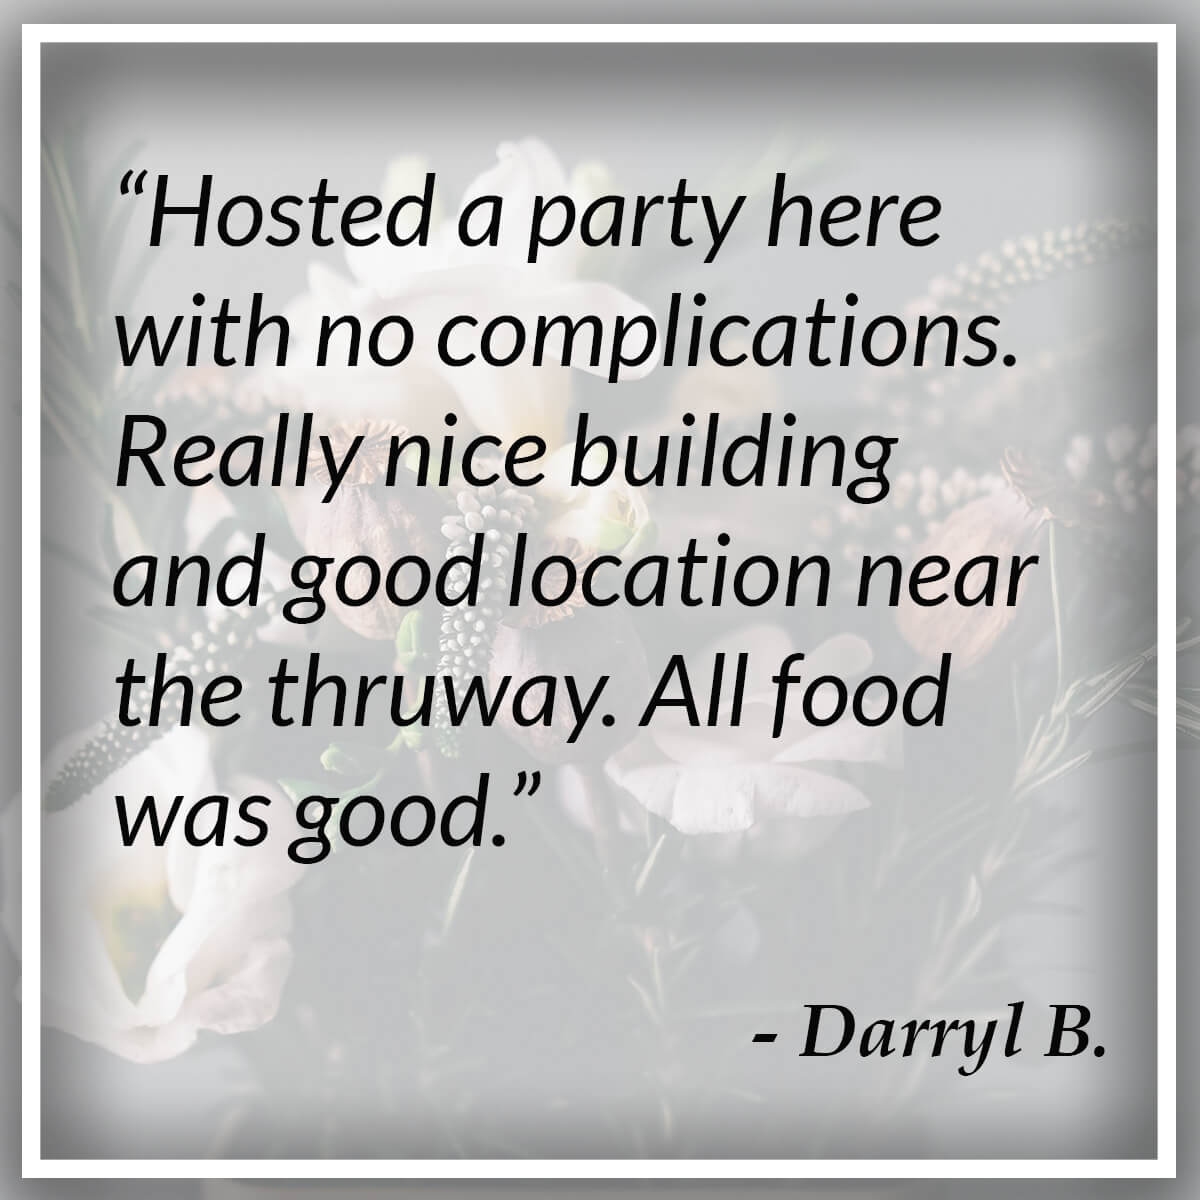 Hosted a party here with no complications. Really nice building and good location near the thruway. All food was good. - Darryl B.